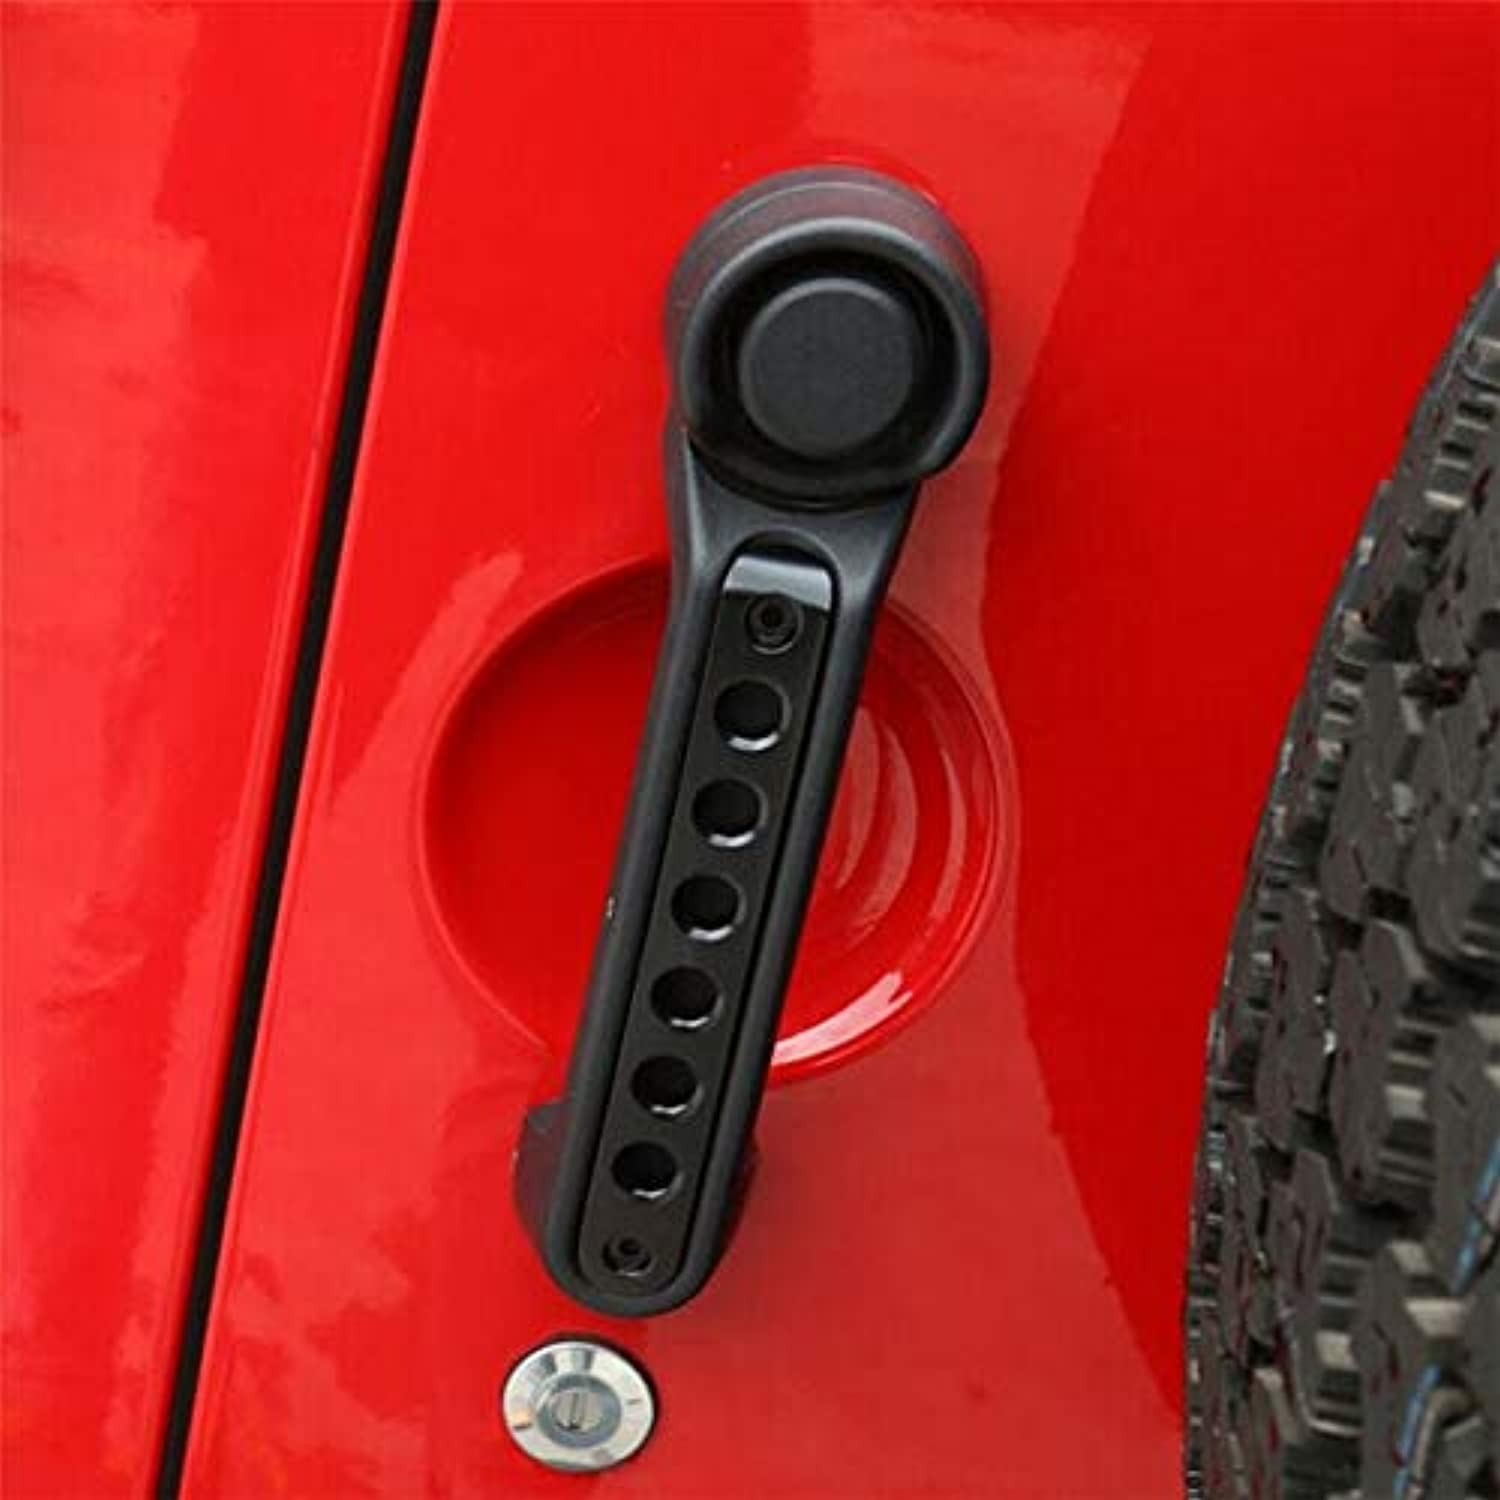 Car Handle Bar Trim Moulding Kits Cover Sticker Accessories Zinc Alloy Aluminum Frame Decoration for Jeep Wrangler 07-16 4 Doors - (color Name  Black)